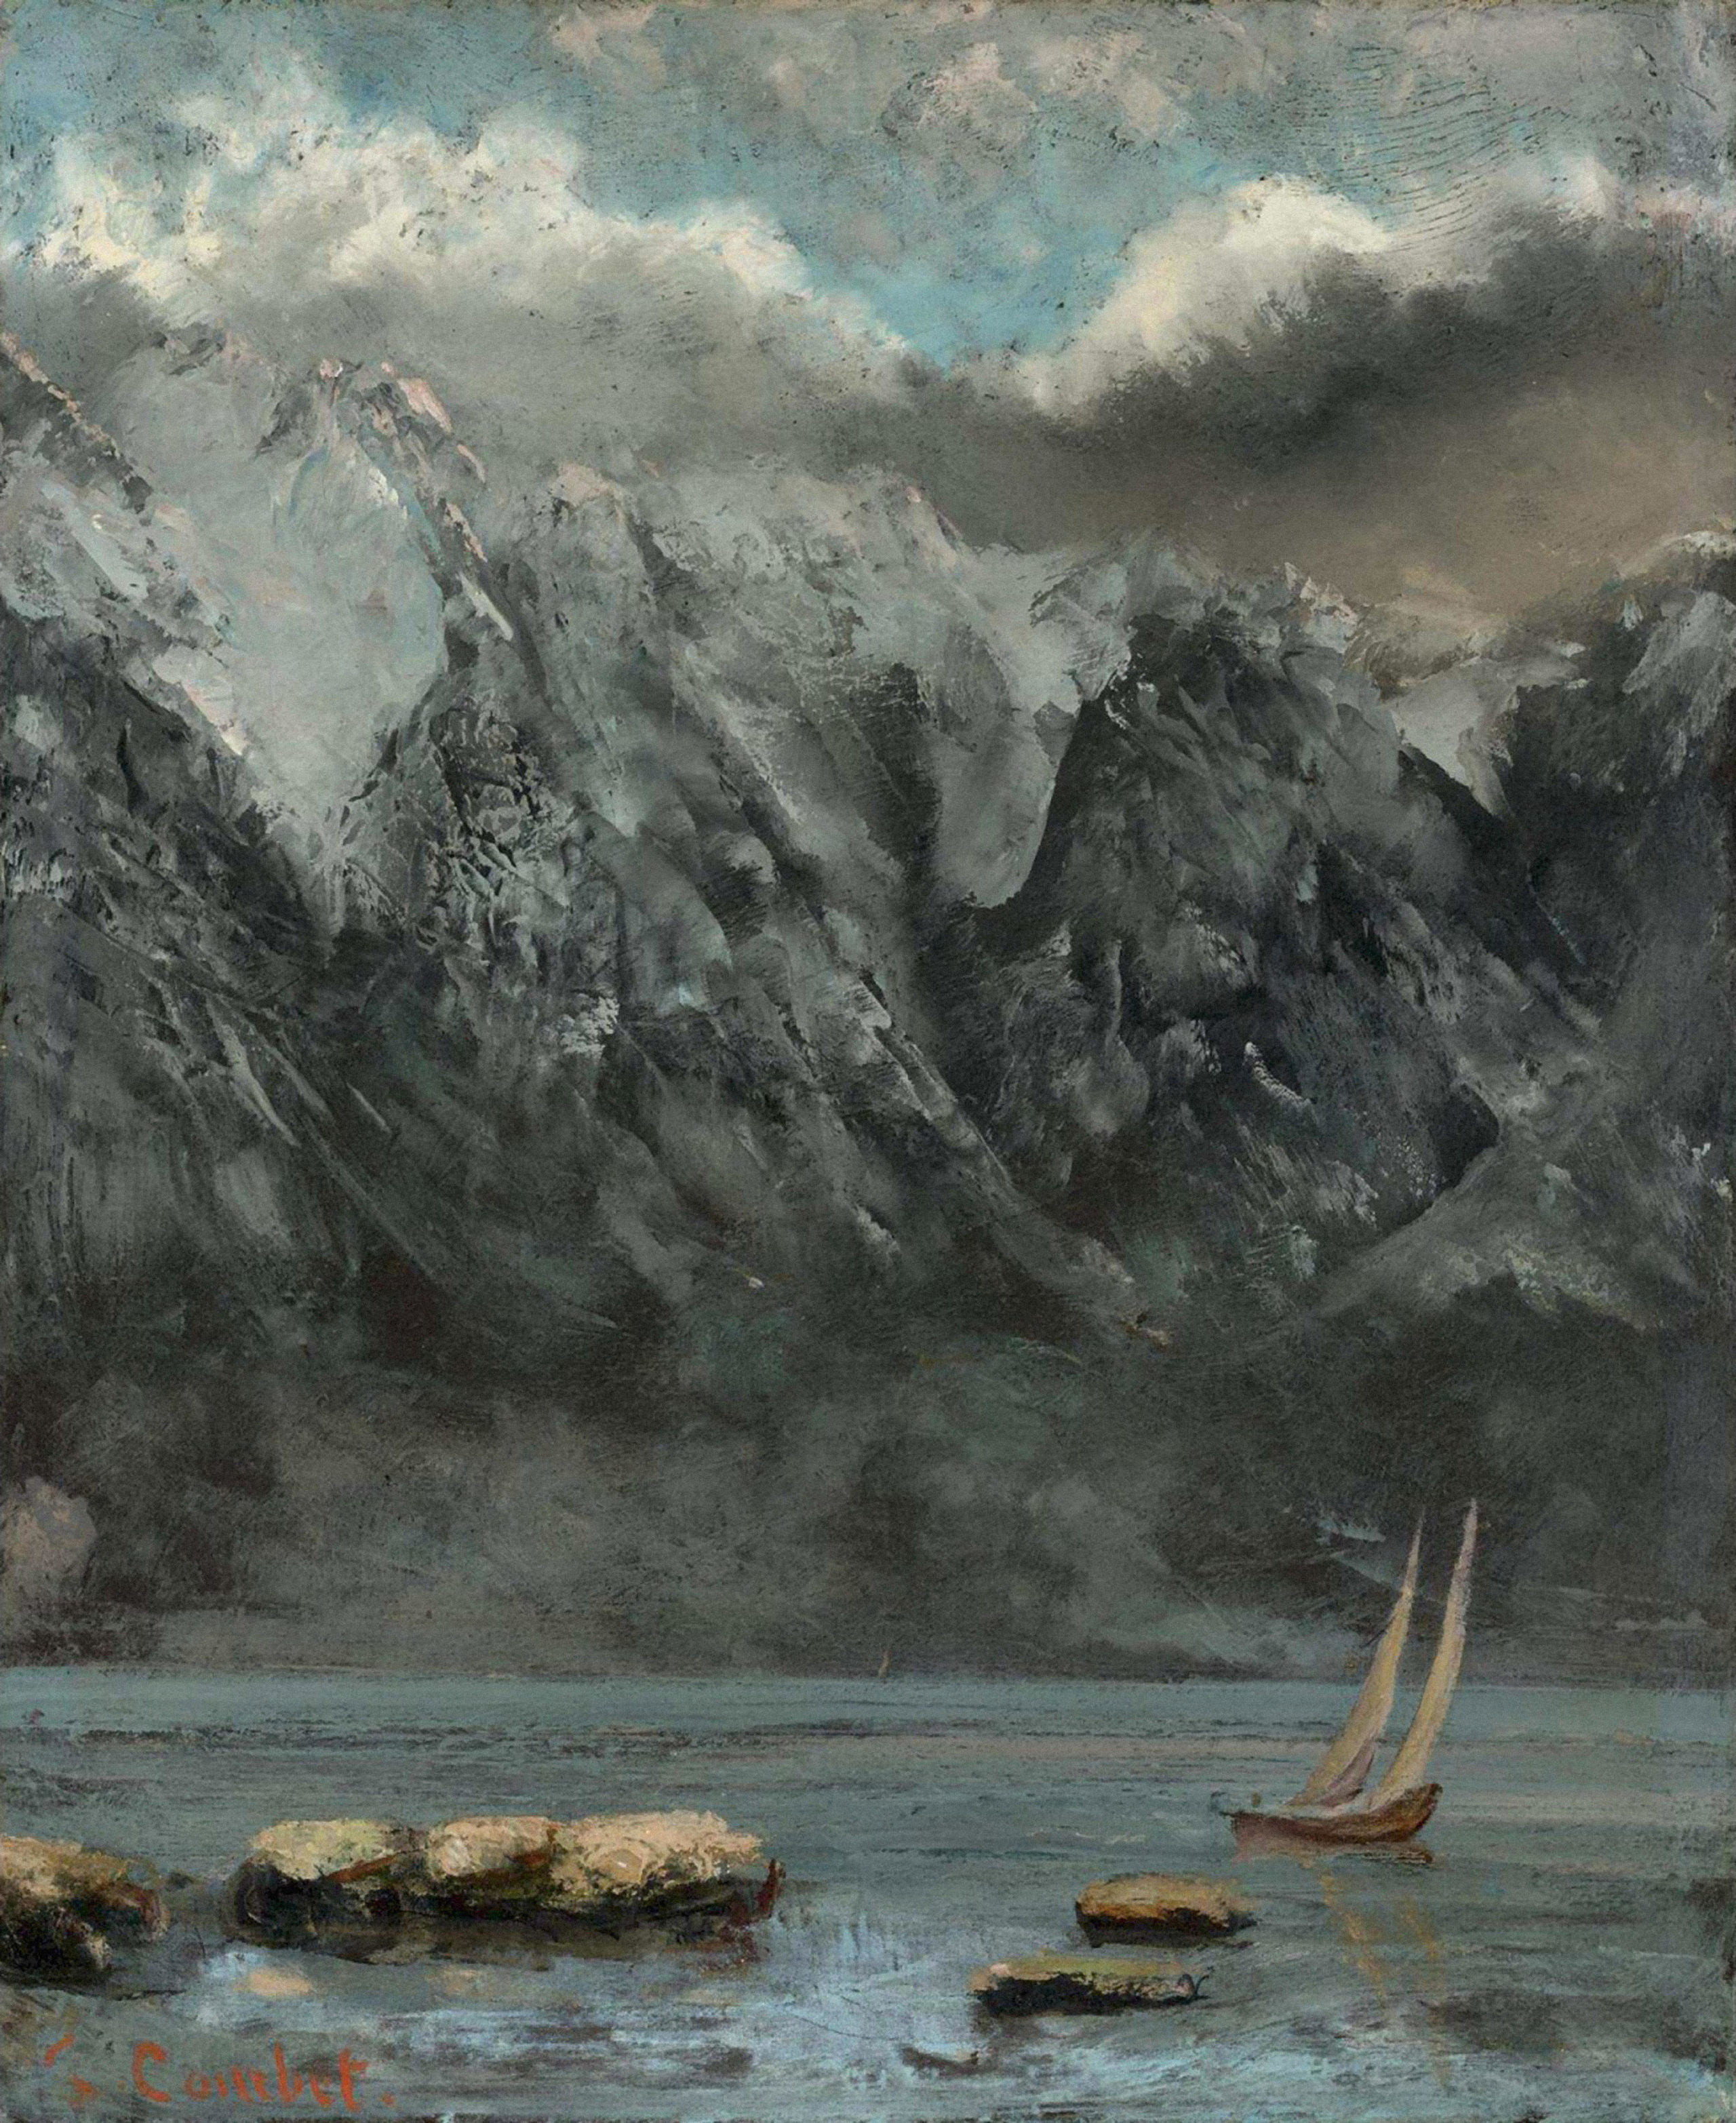 Gustave Courbet, Bords du lac Léman (Rive del Lago di Ginevra), 1874 circa, Messico, collezione Pérez Simón ©Photo12/Alamy